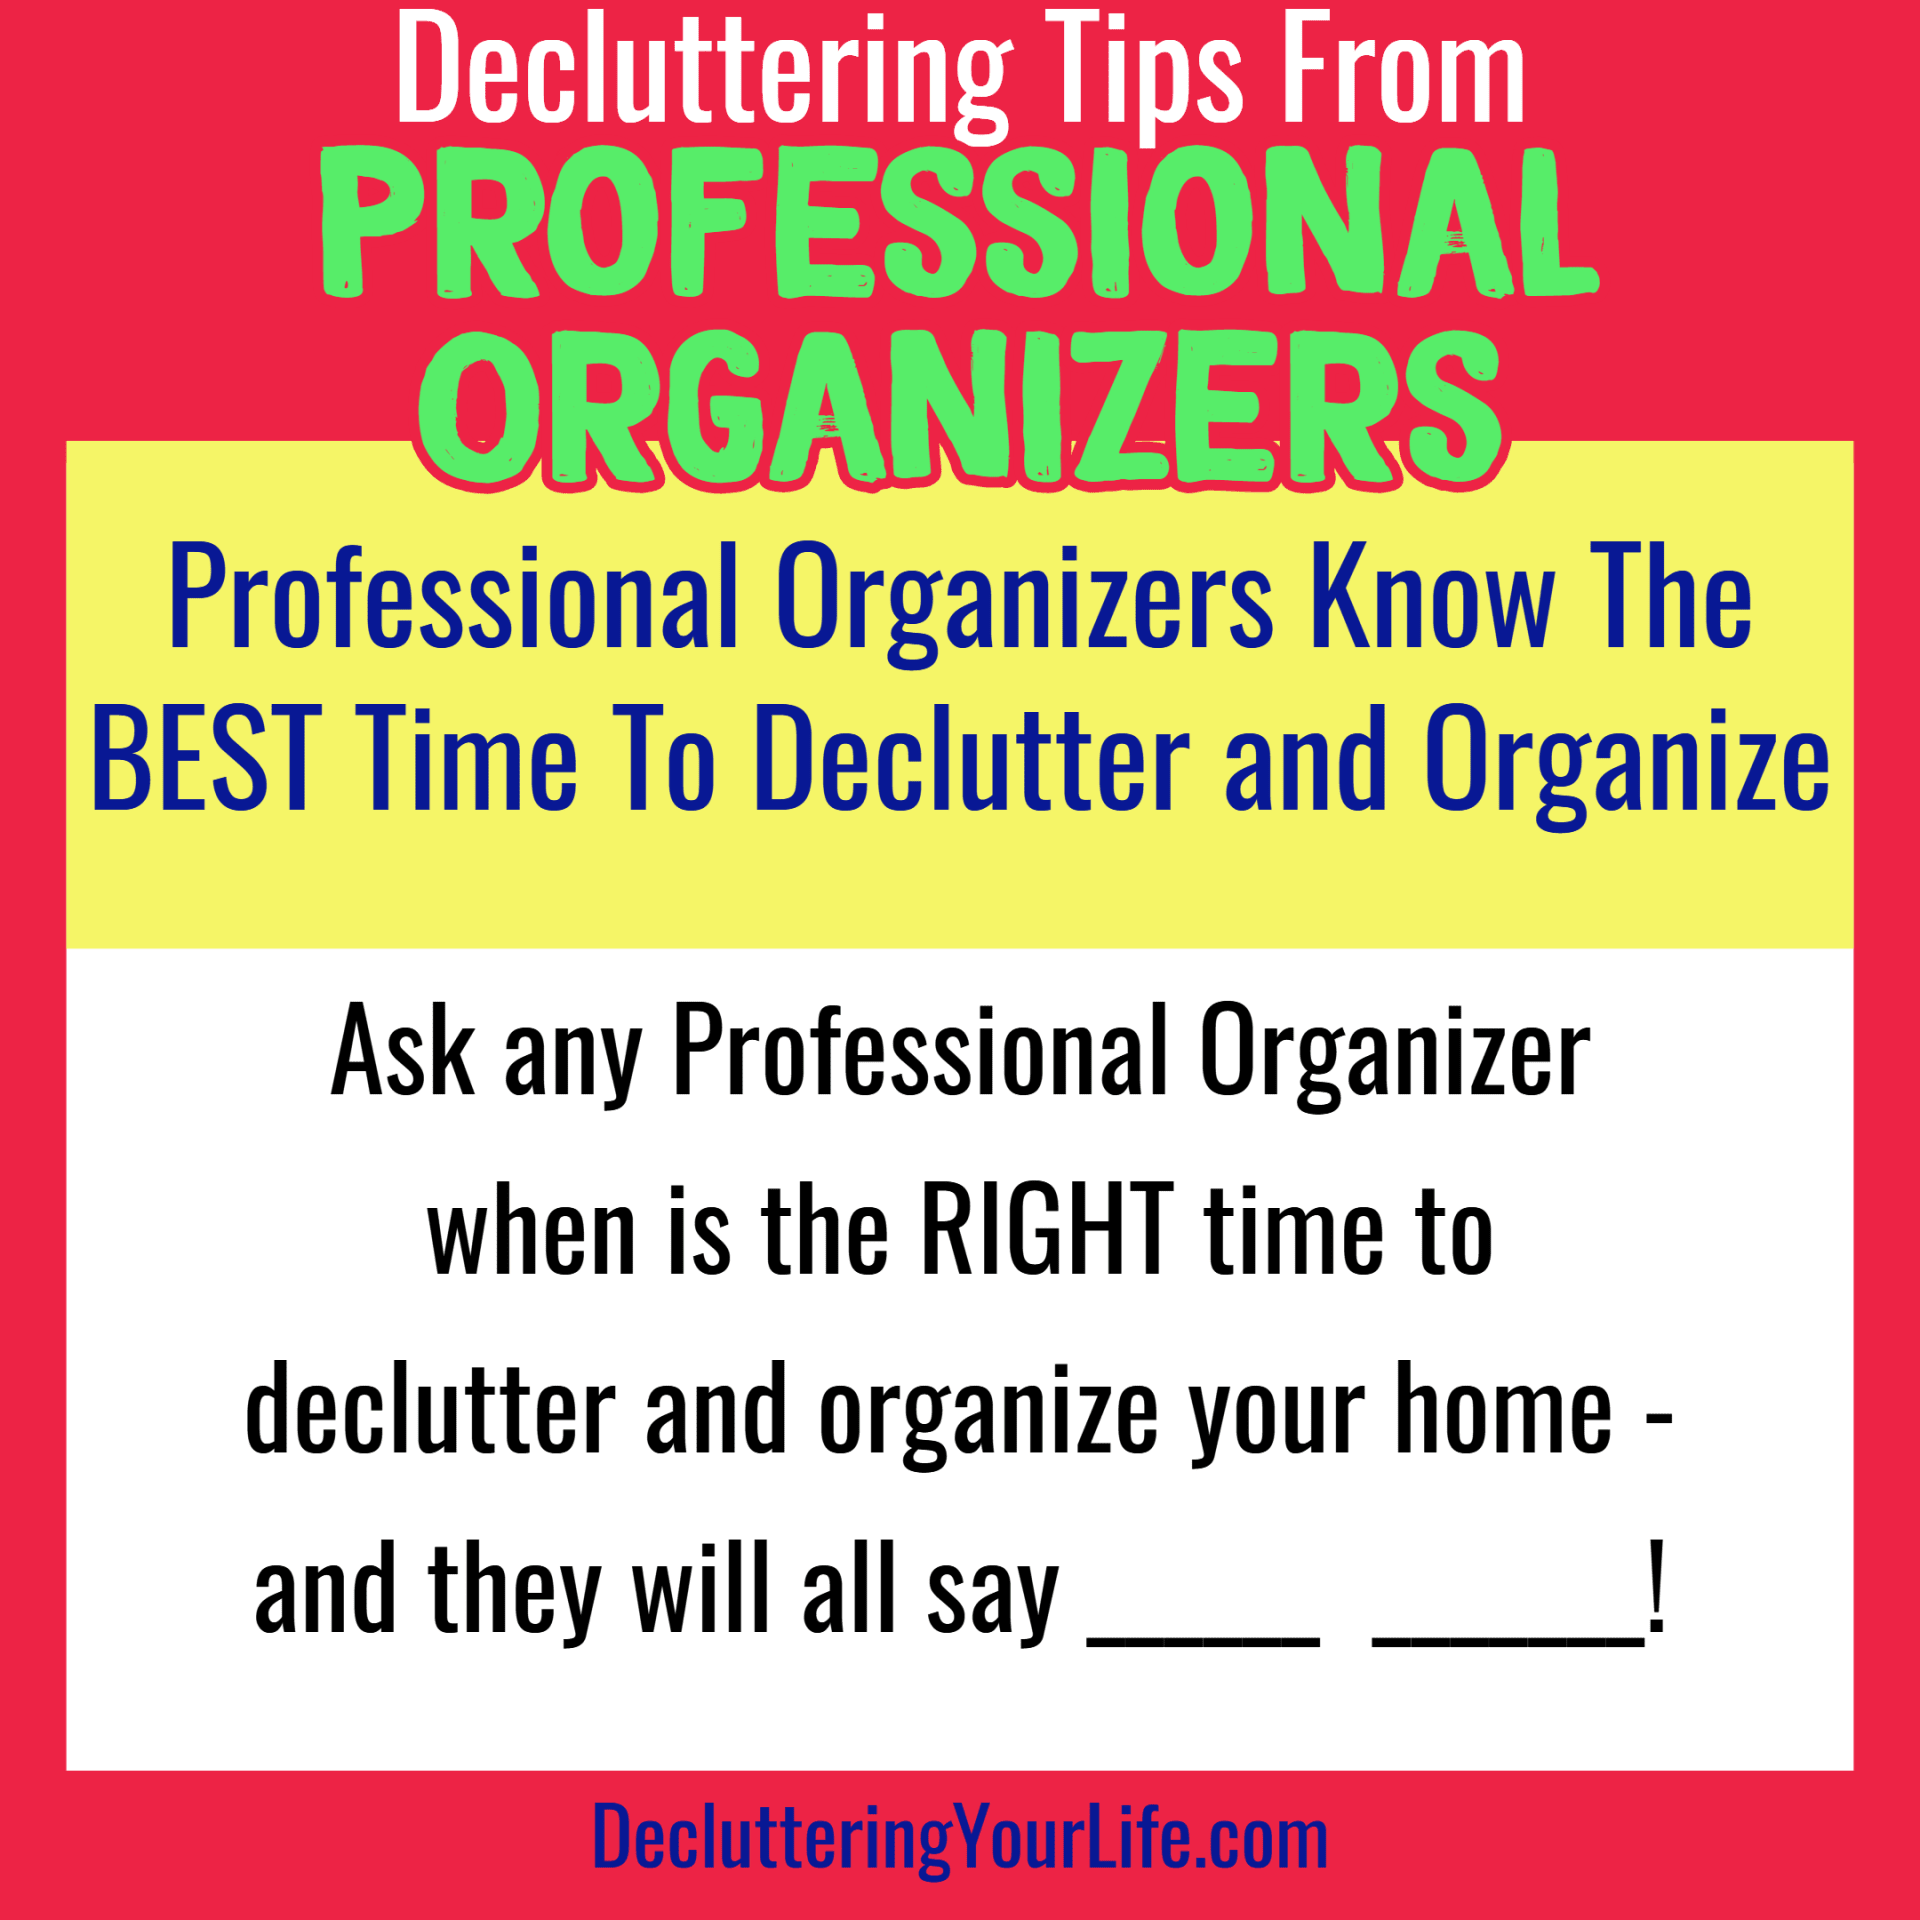 Tips from Professional Organizers - Feeling Overwhelmed by clutter and your messy house, here's some tips from the Pros to help you declutter and organize your home